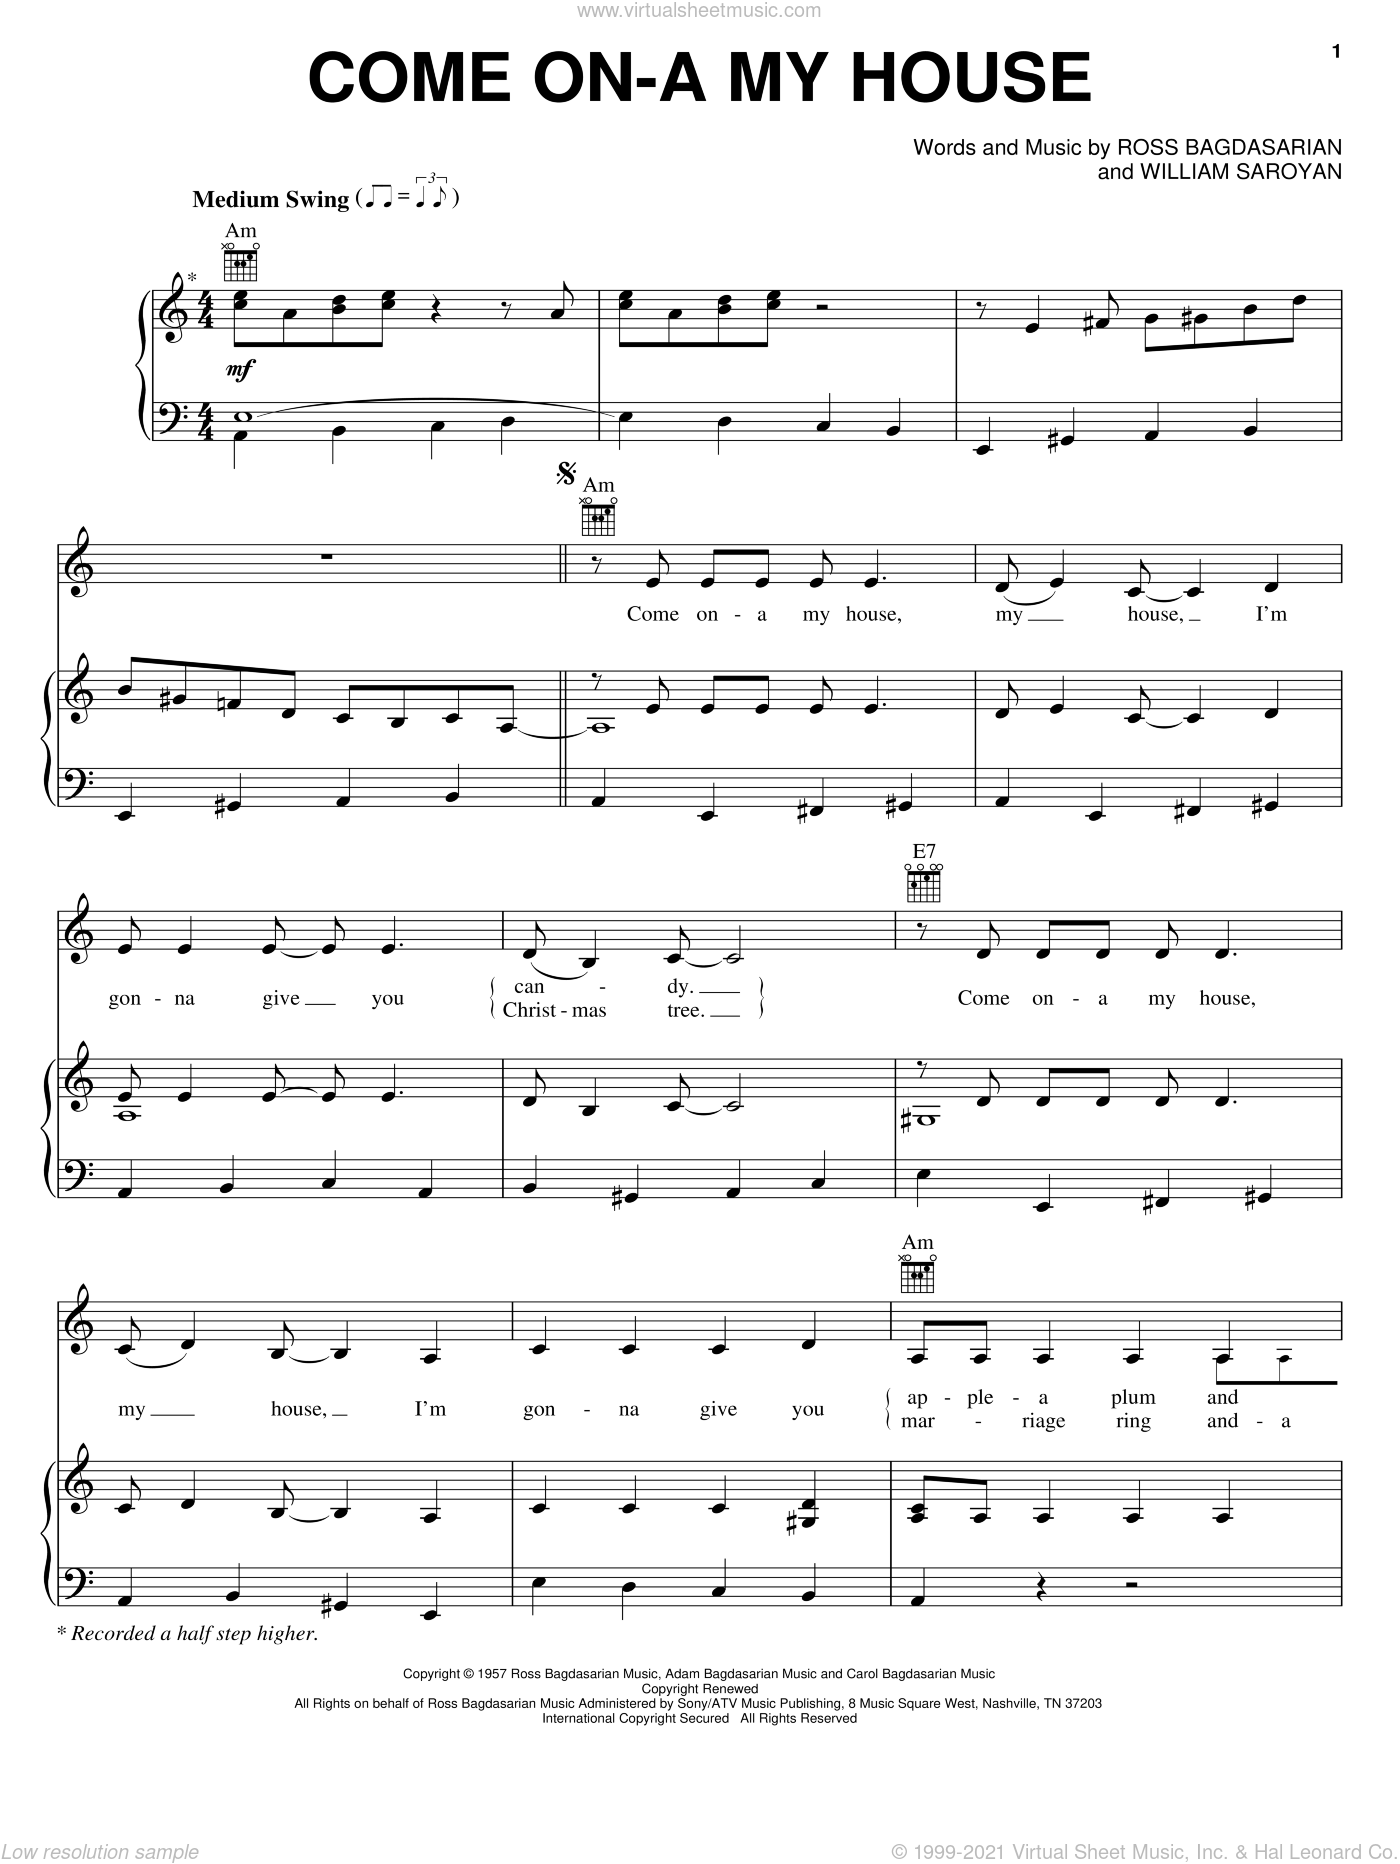 Come On-A My House sheet music for voice, piano or guitar by William Saroyan, Rosemary Clooney and Ross Bagdasarian. Score Image Preview.